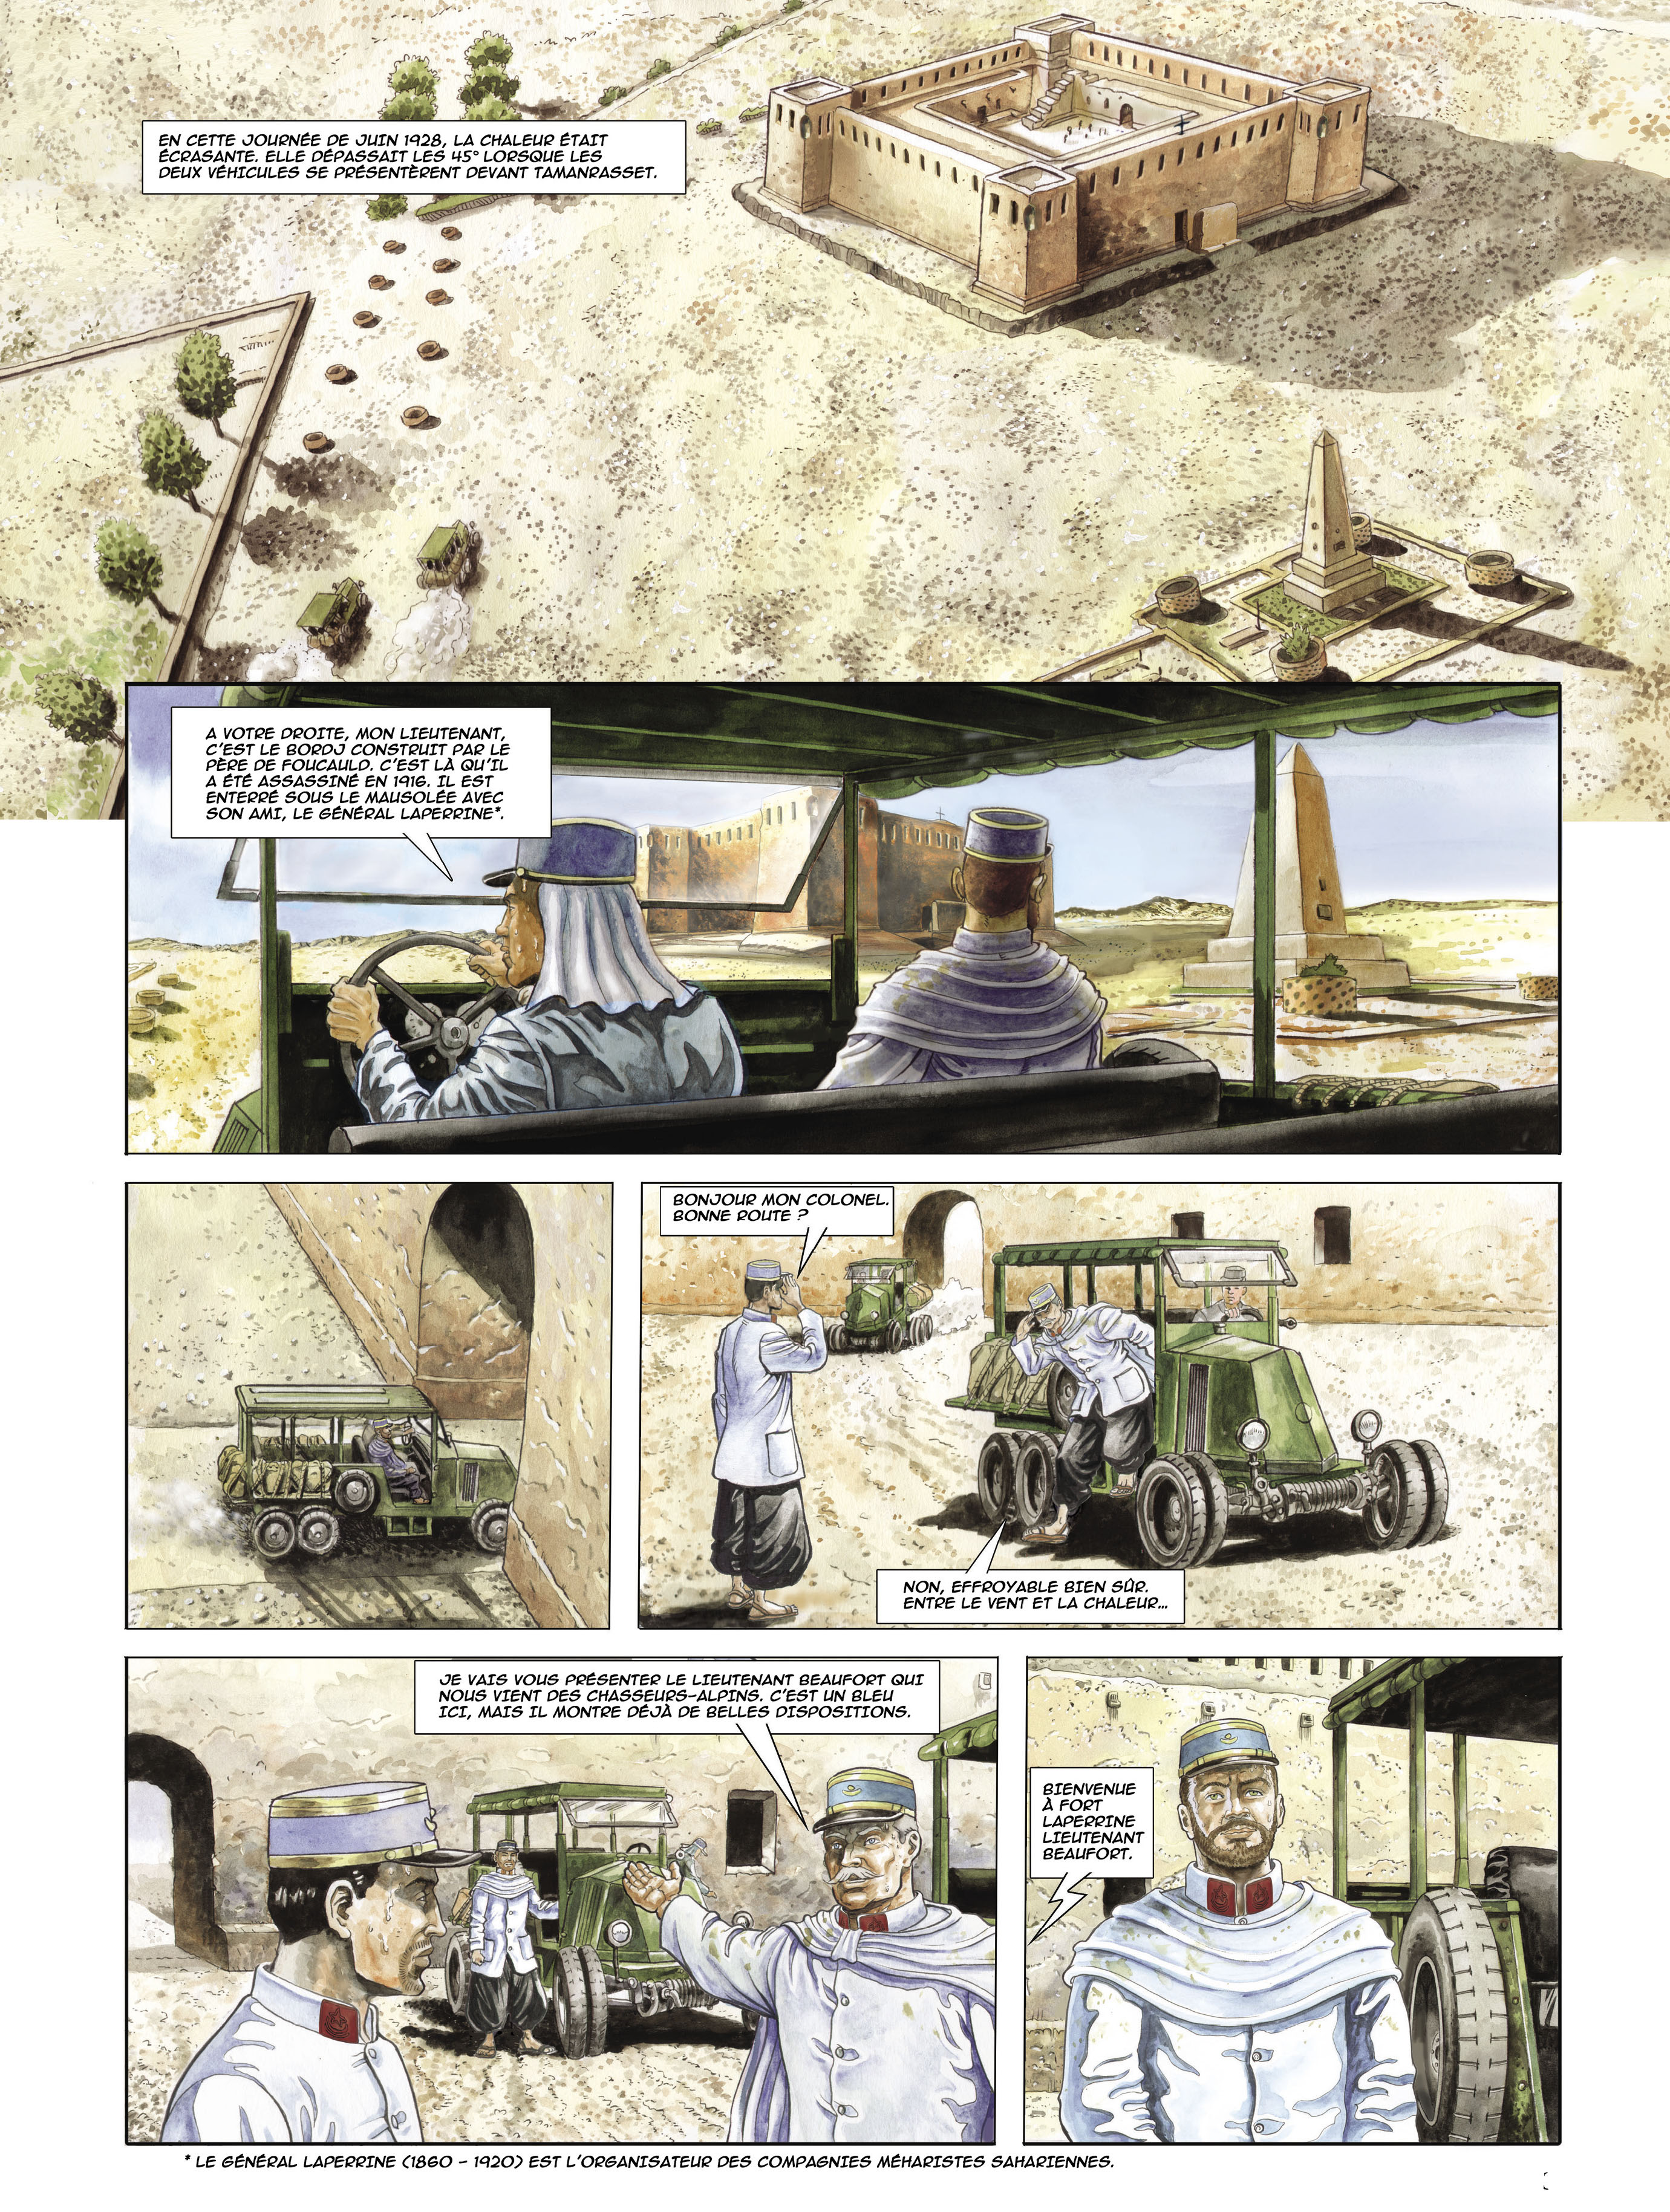 Piste Oubliee_Planche5